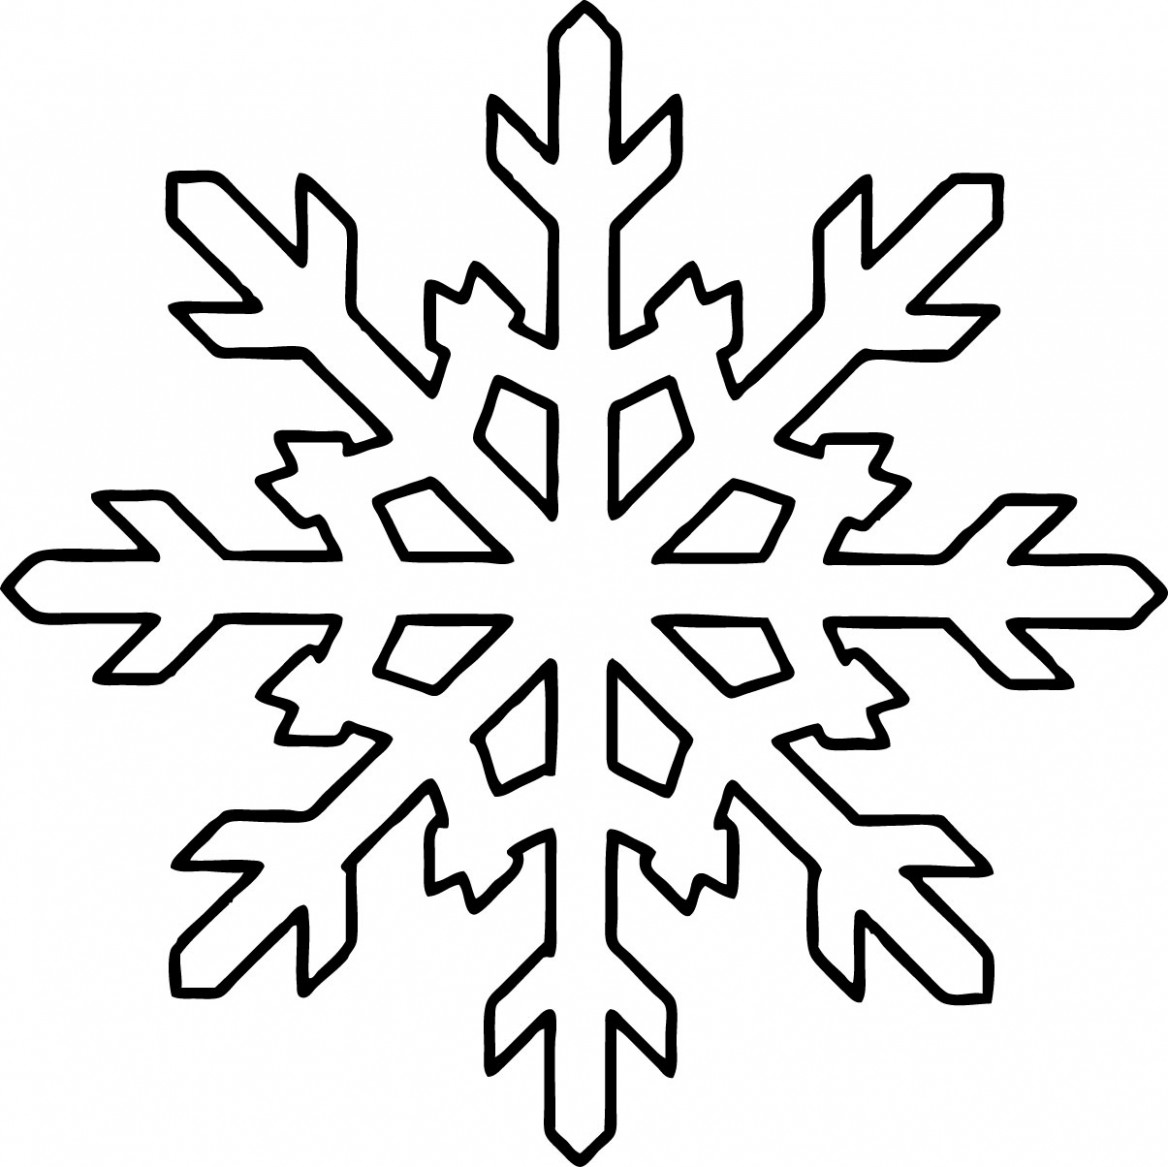 Free Printable Snowflake Coloring Pages For Kids – Christmas Coloring Pages Snowflakes